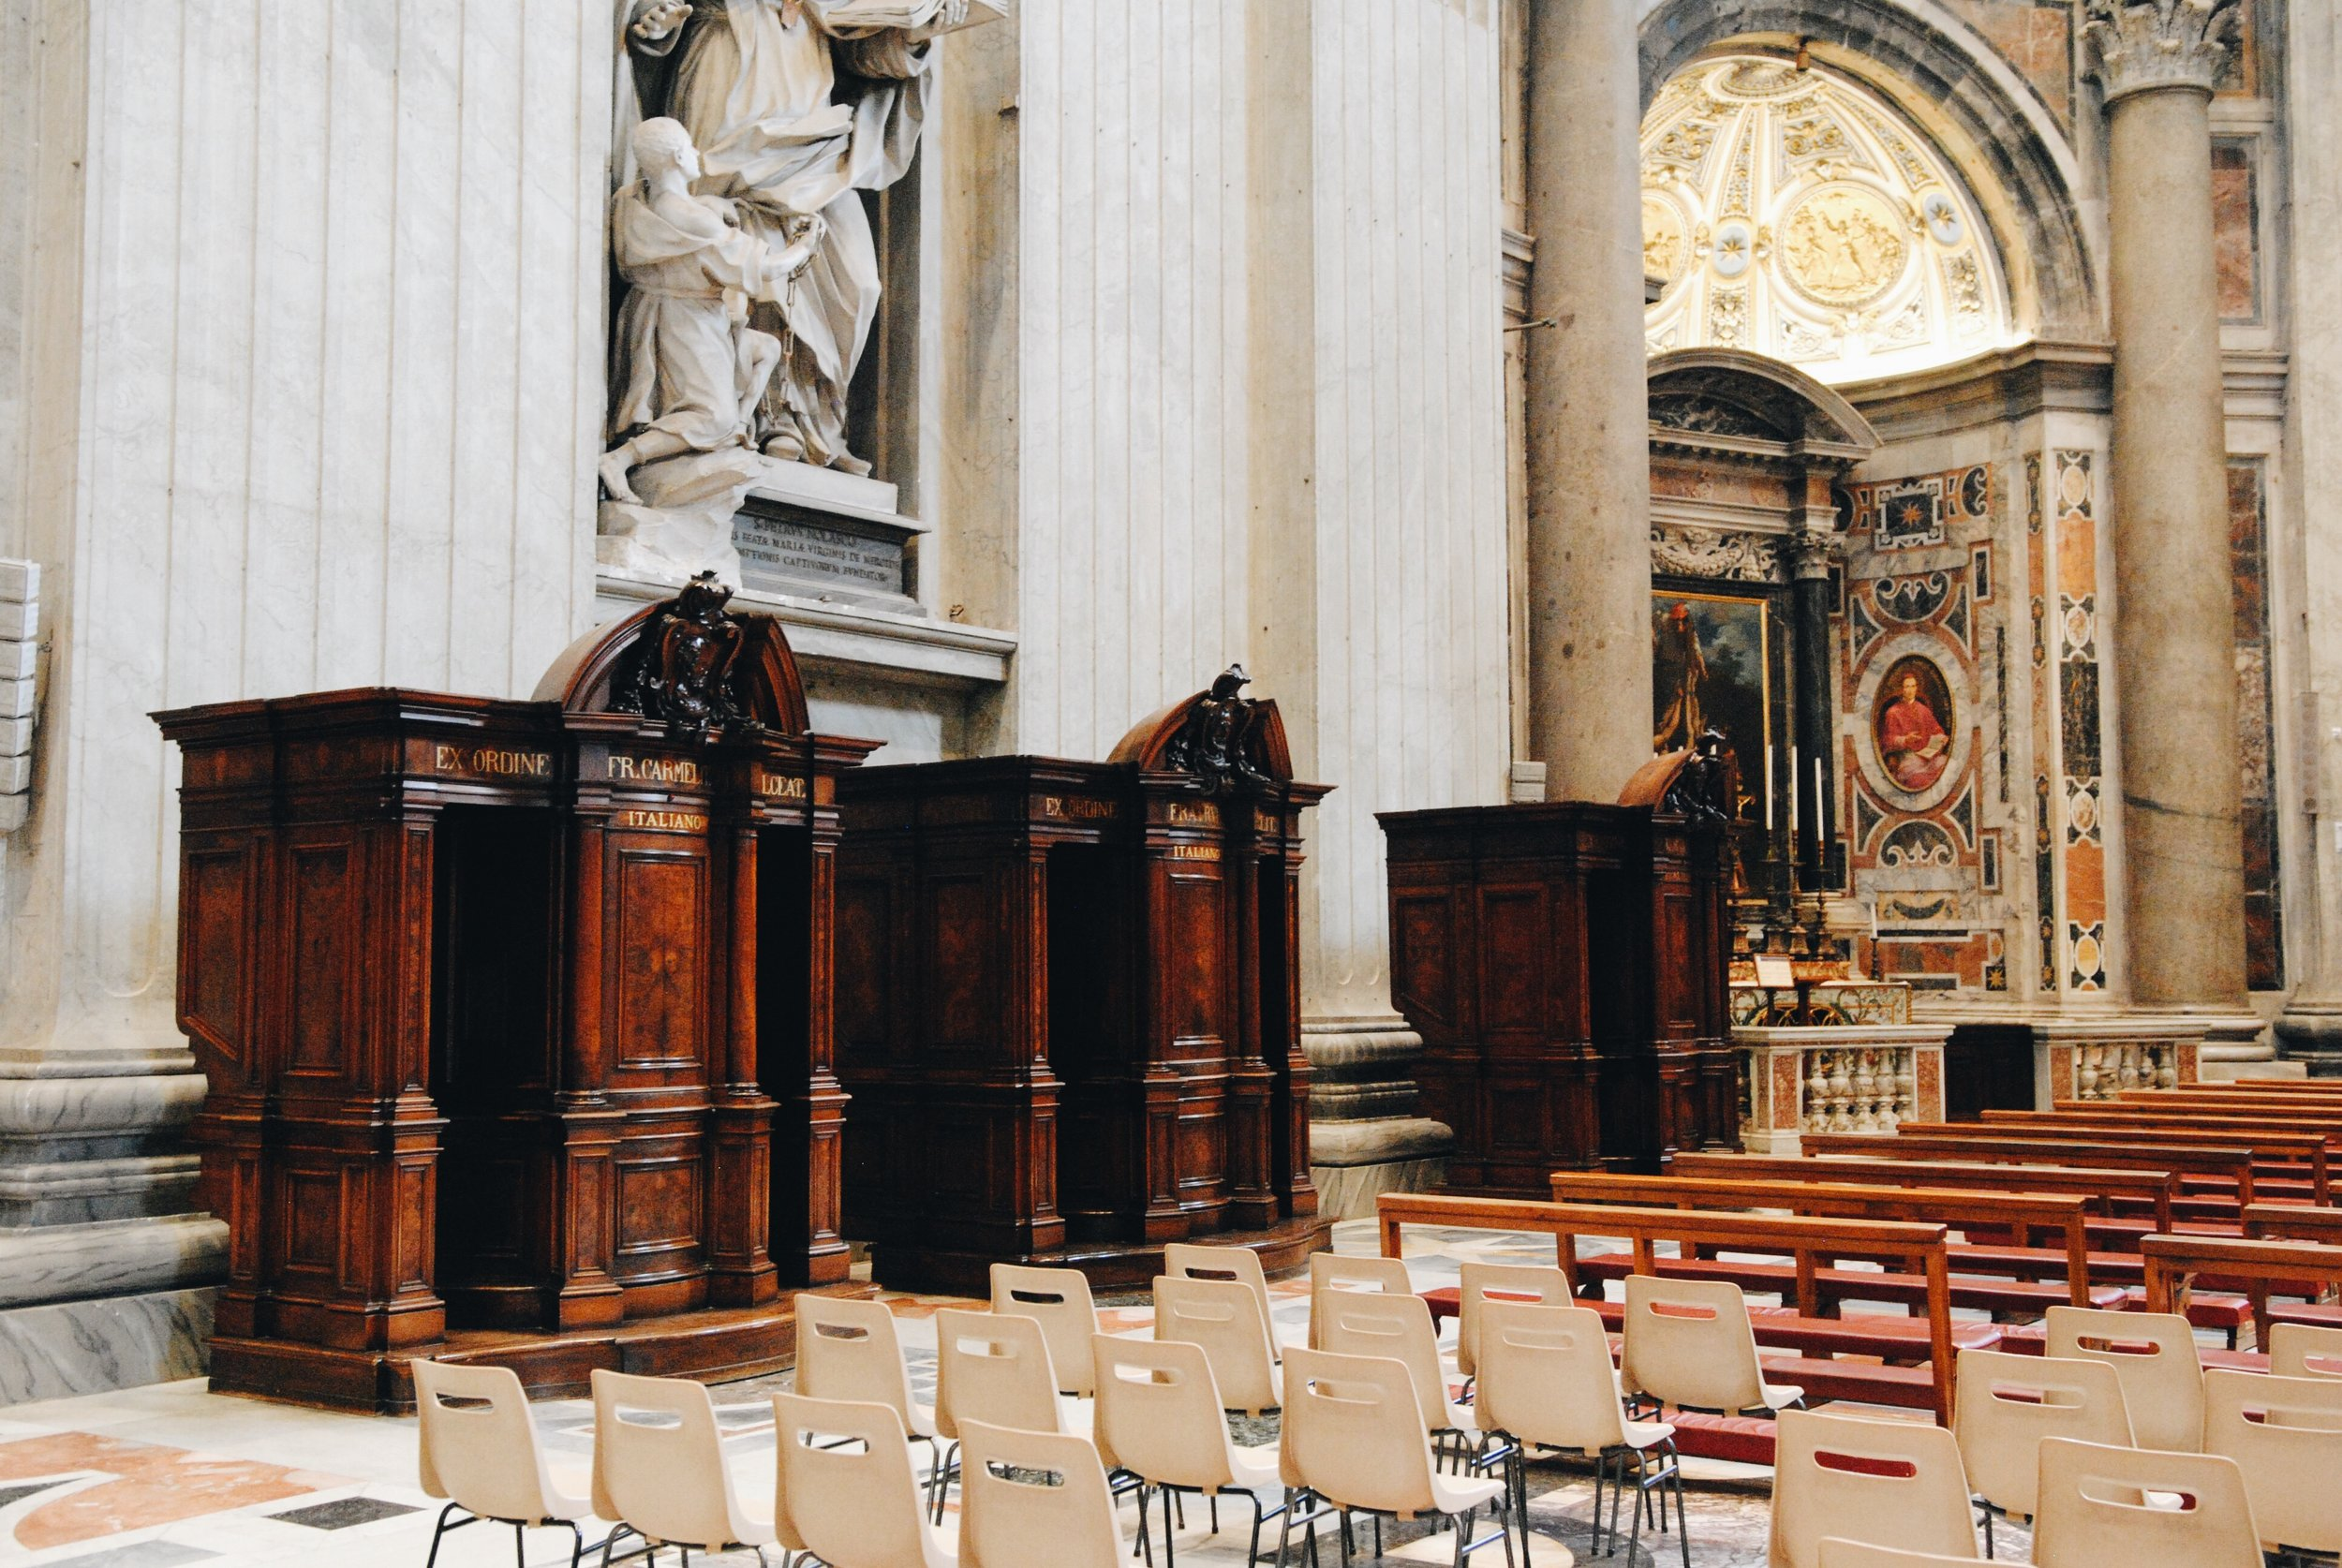 St. Peter's Basilica: Multiple confession booths